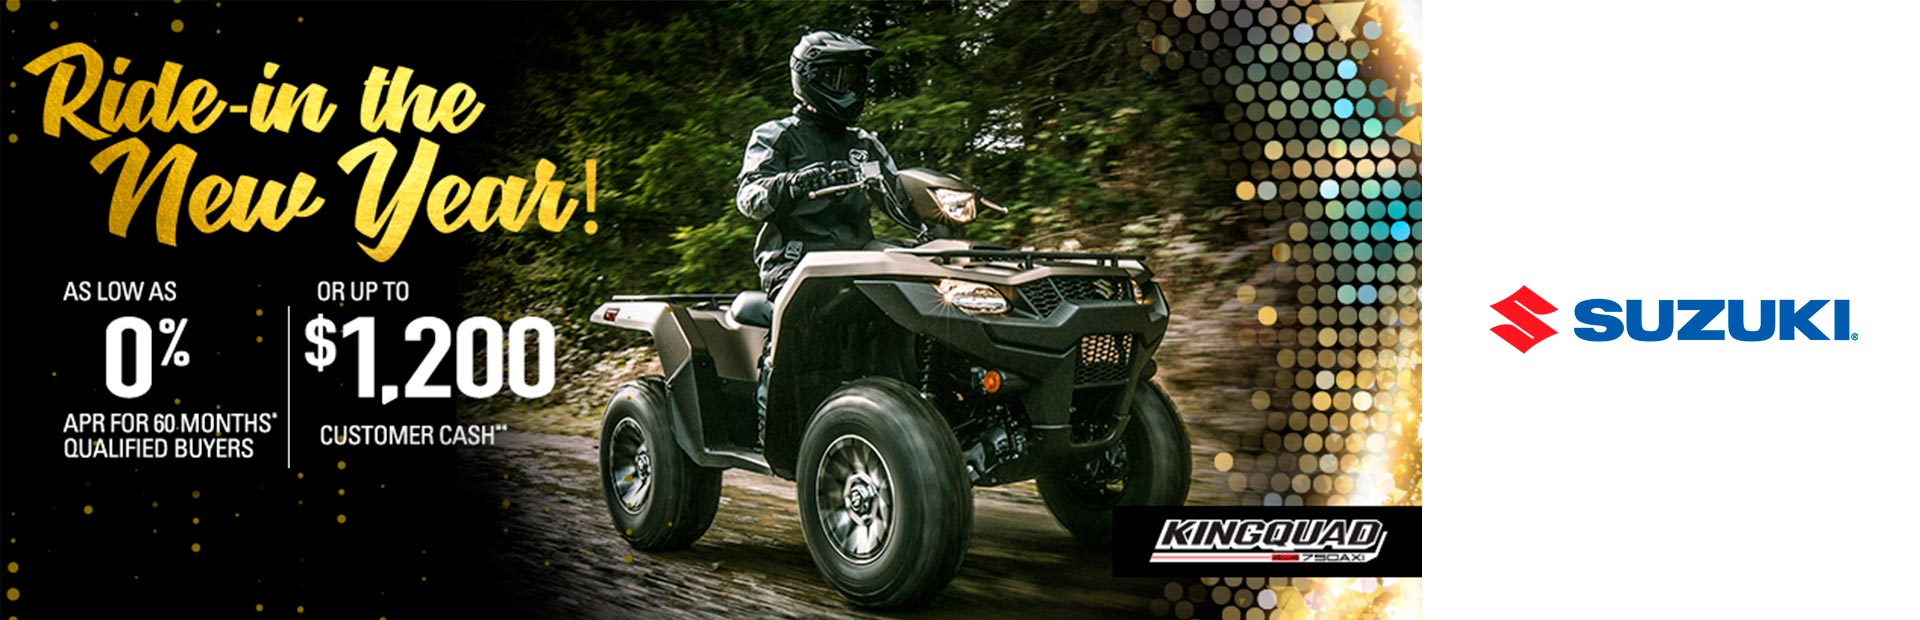 Suzuki: Ride-In The New Year! - ATVs